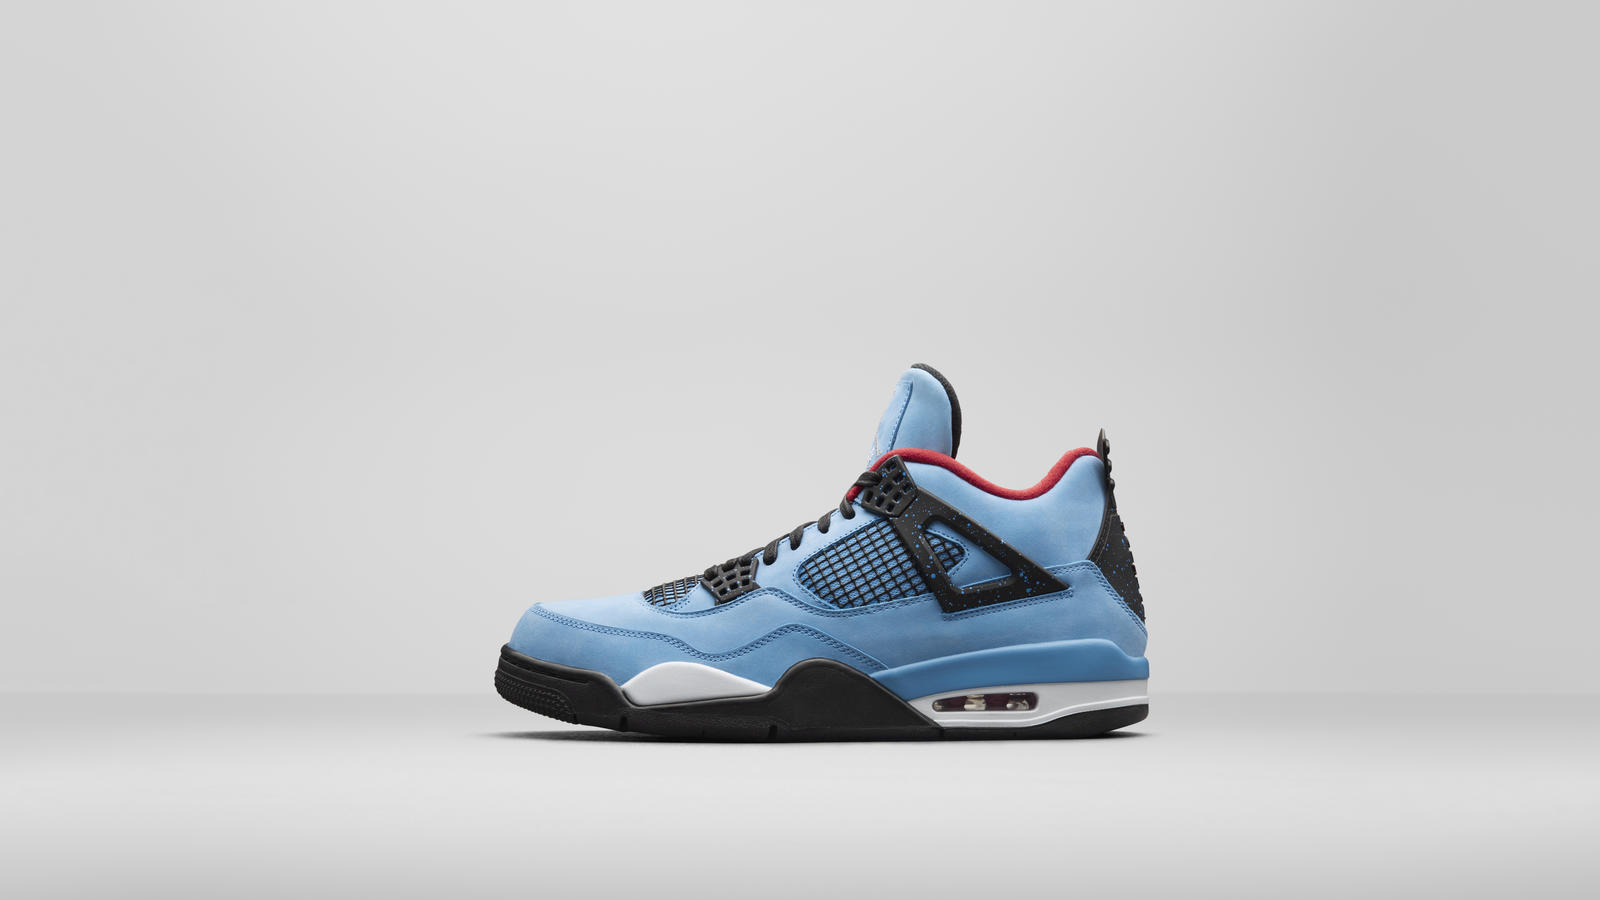 new style d0a6d 8ca35 Air Jordan IV Travis Scott - Nike News